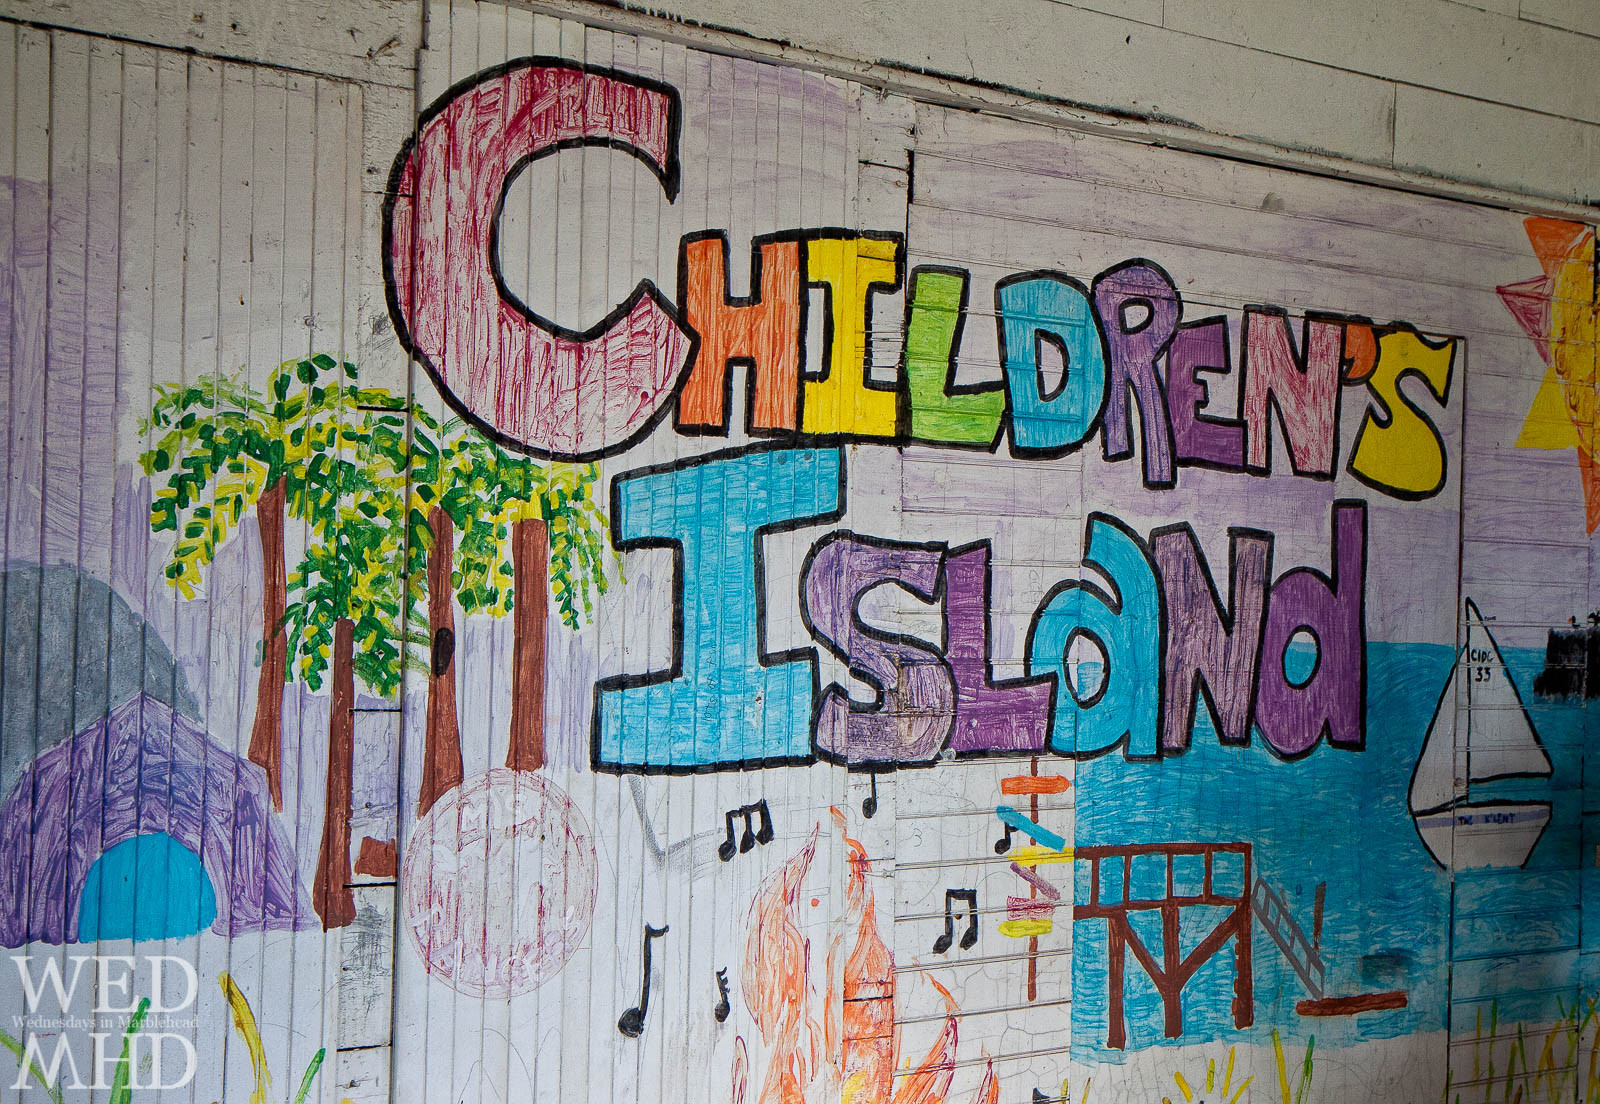 Welcome to Children's Island